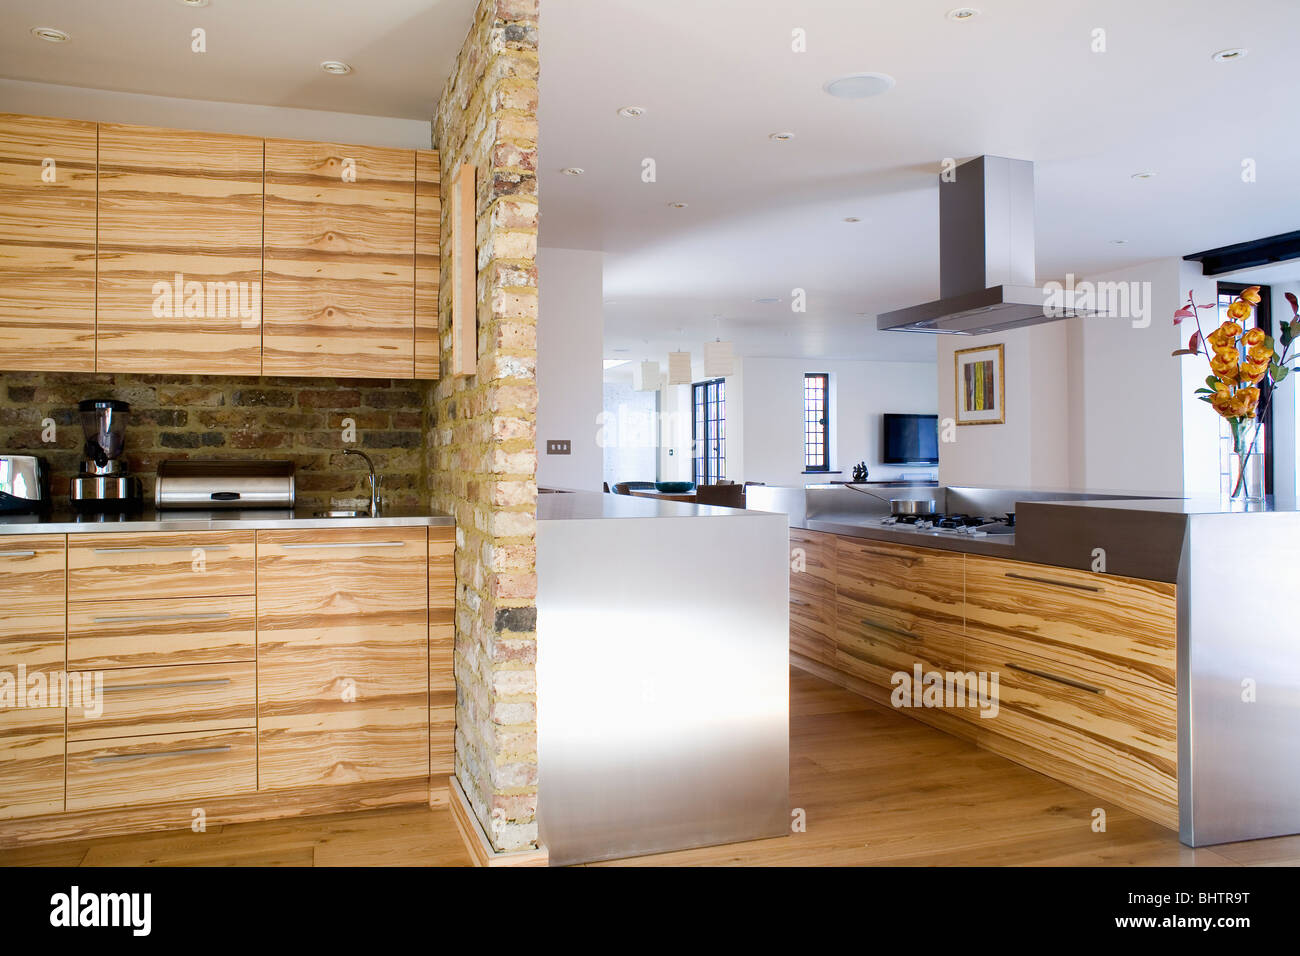 Fitted cupboards with walnut veneer doors beside exposed stone dividing wall in large modern kitchen with